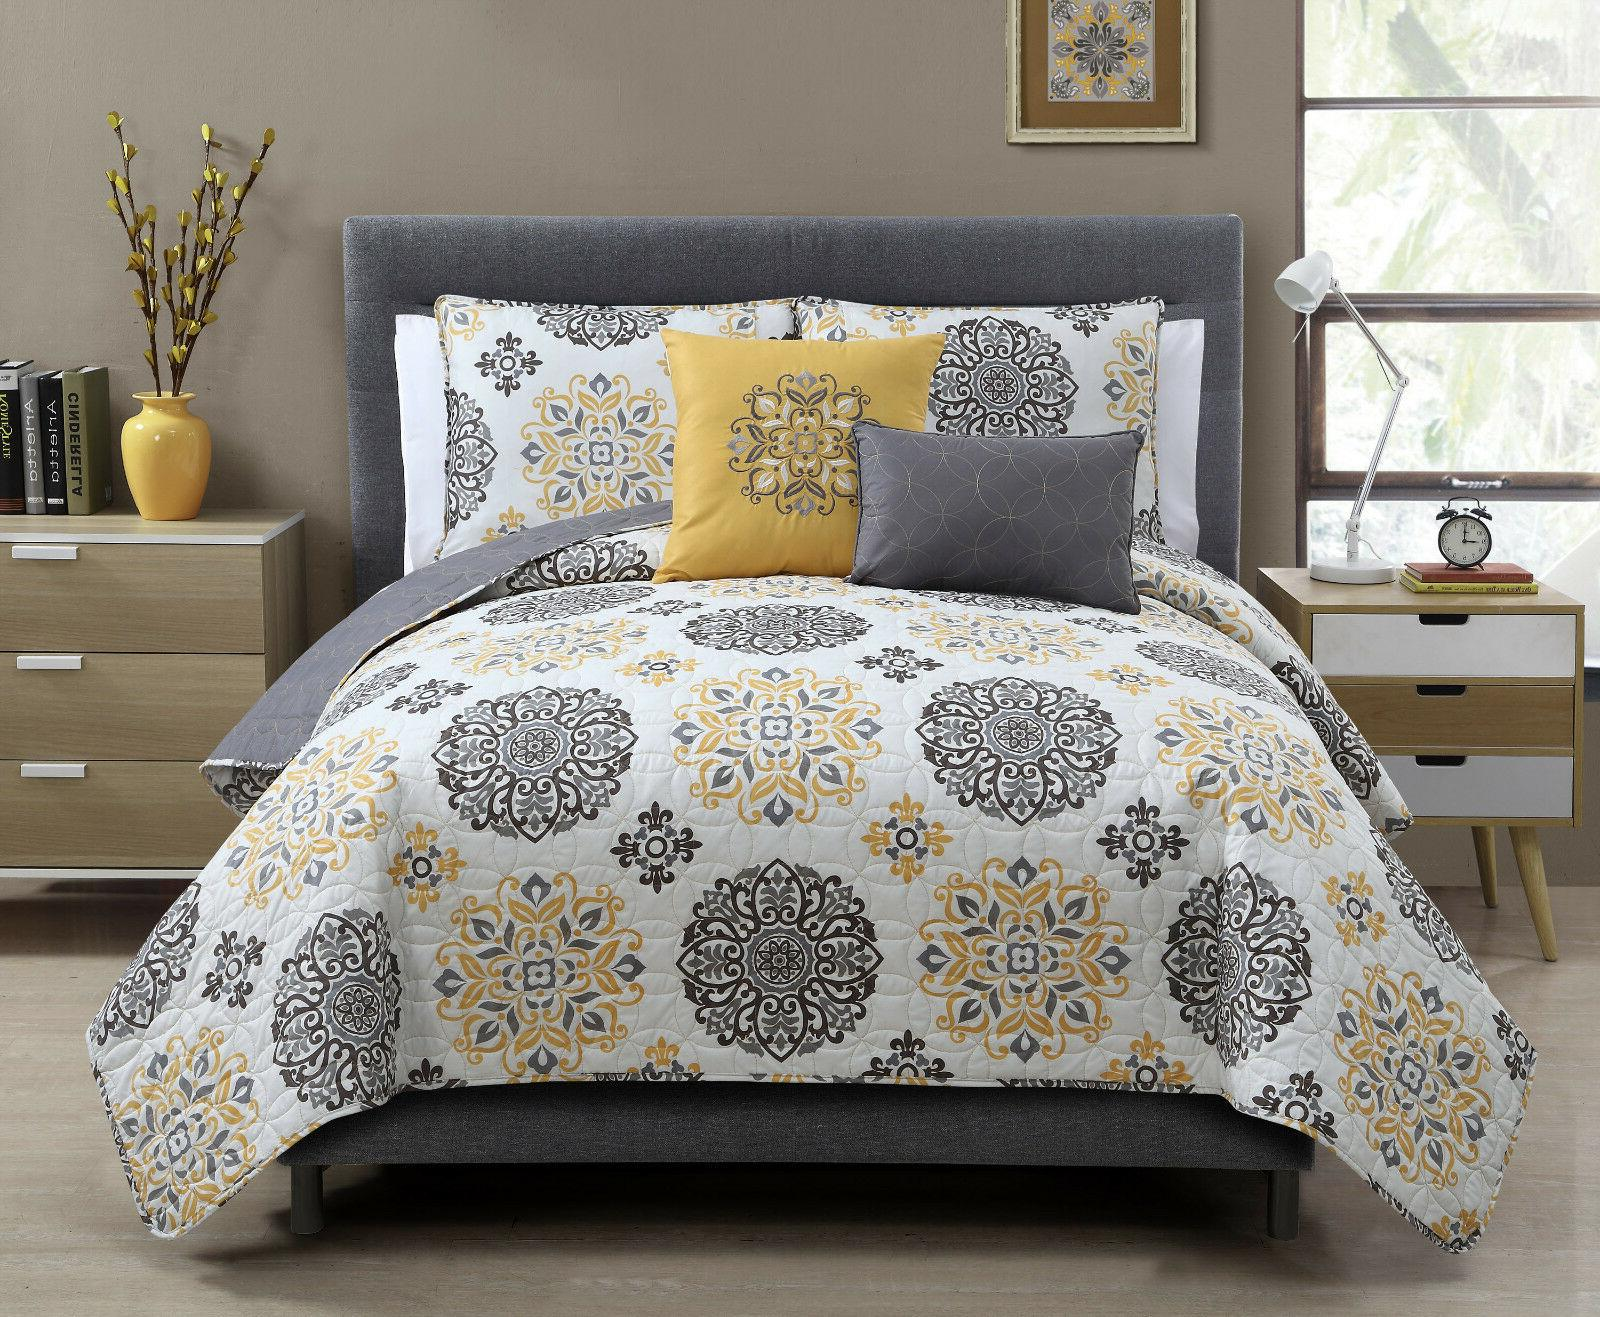 VCNY Home Hayden Yellow & Gray Medallion 5 Pc. Reversible Qu